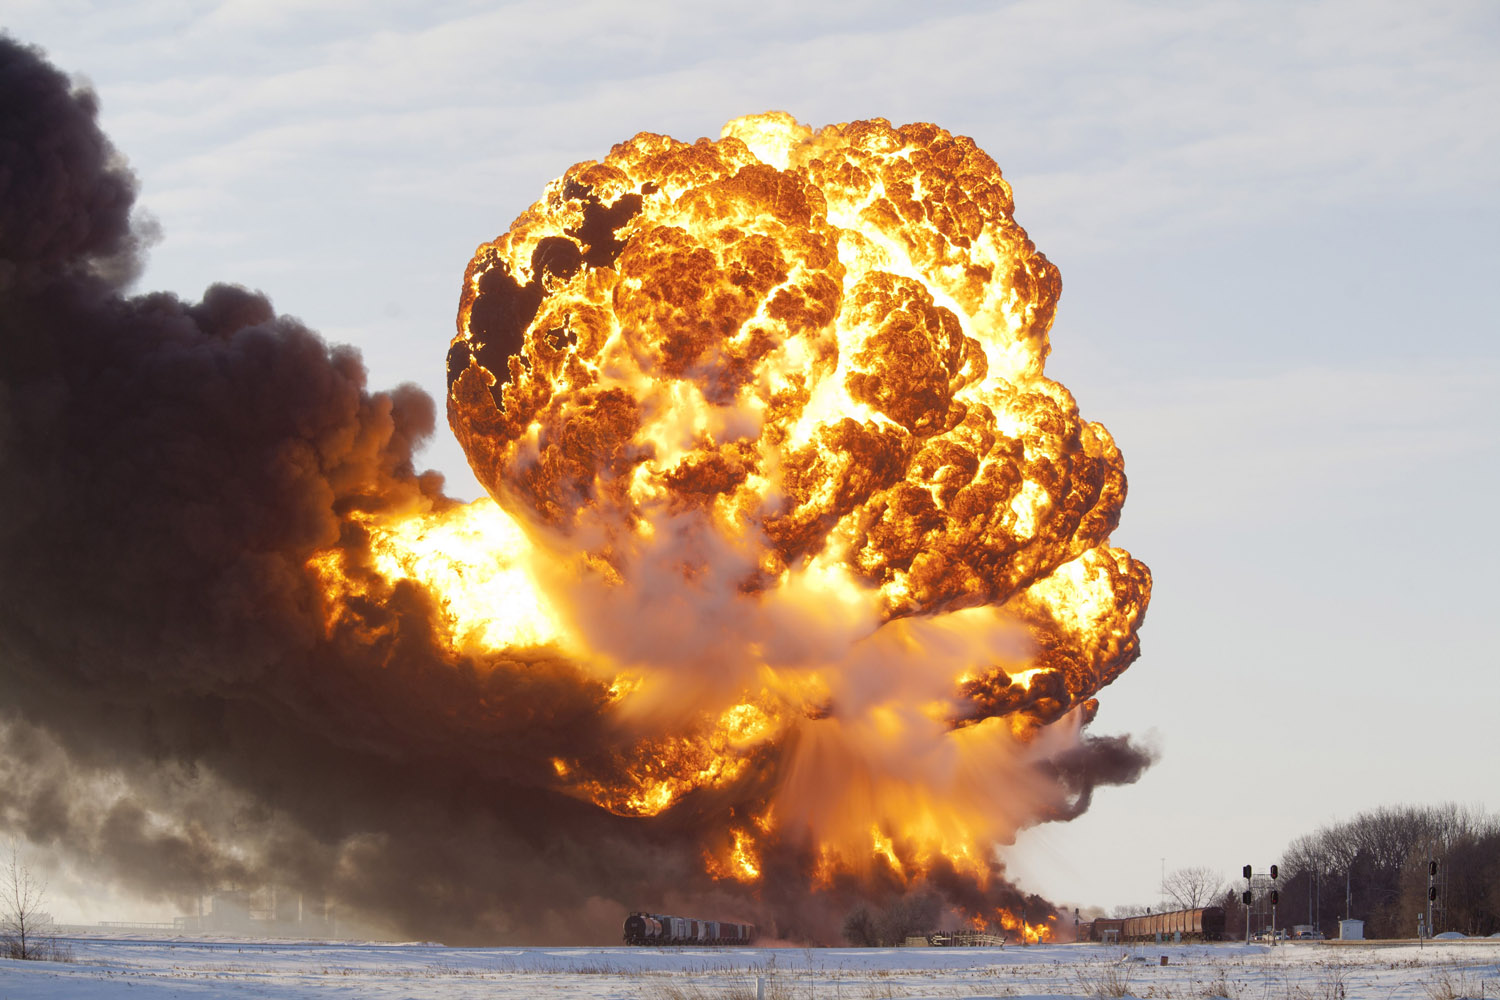 Dec. 30, 2013. A massive fireball from an exploding train car rises into the air just west of Casselton, North Dakota.